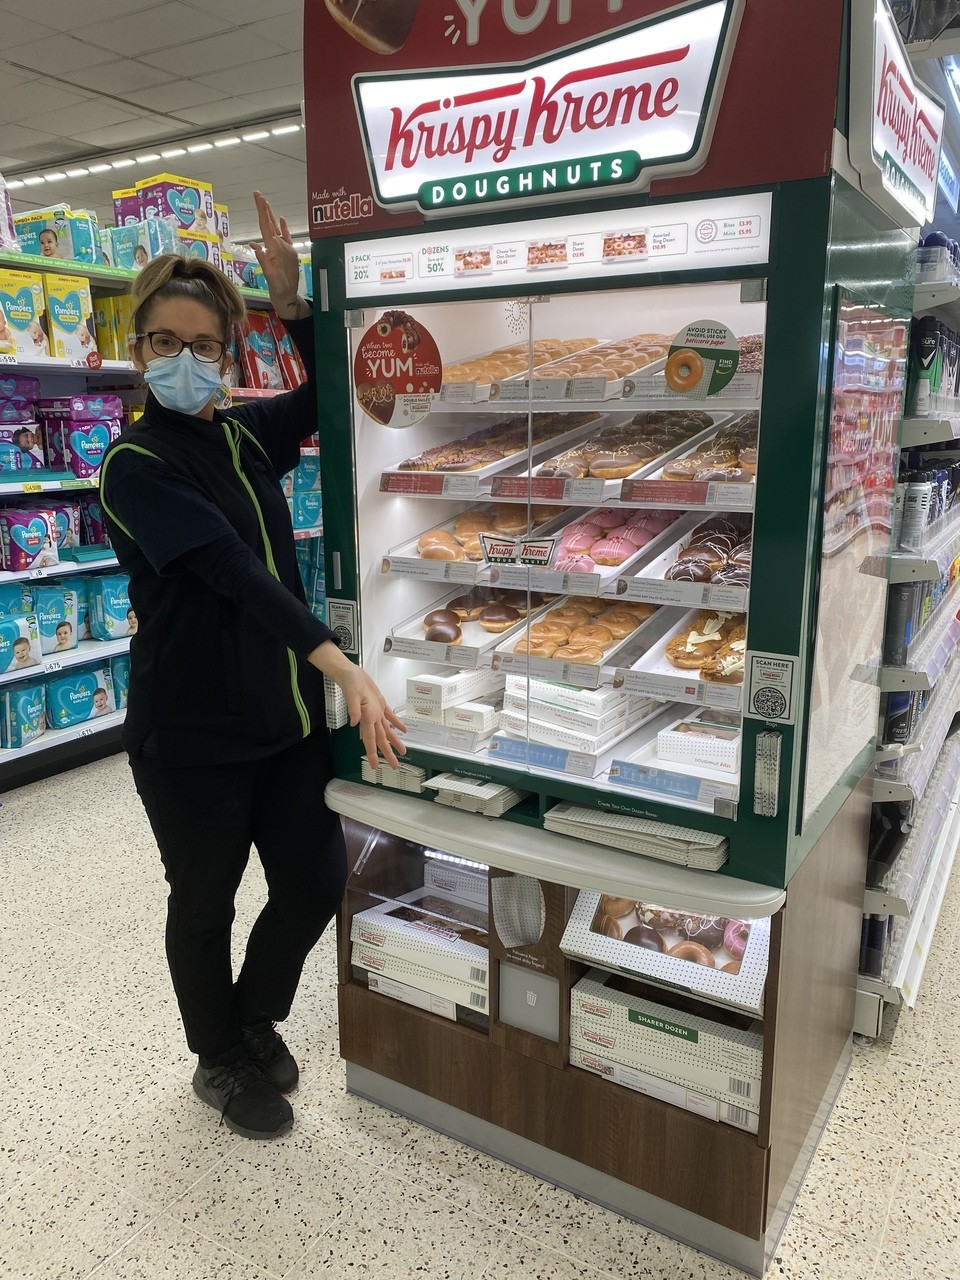 Krispy Kreme donuts have arrived | Asda Chelmsford